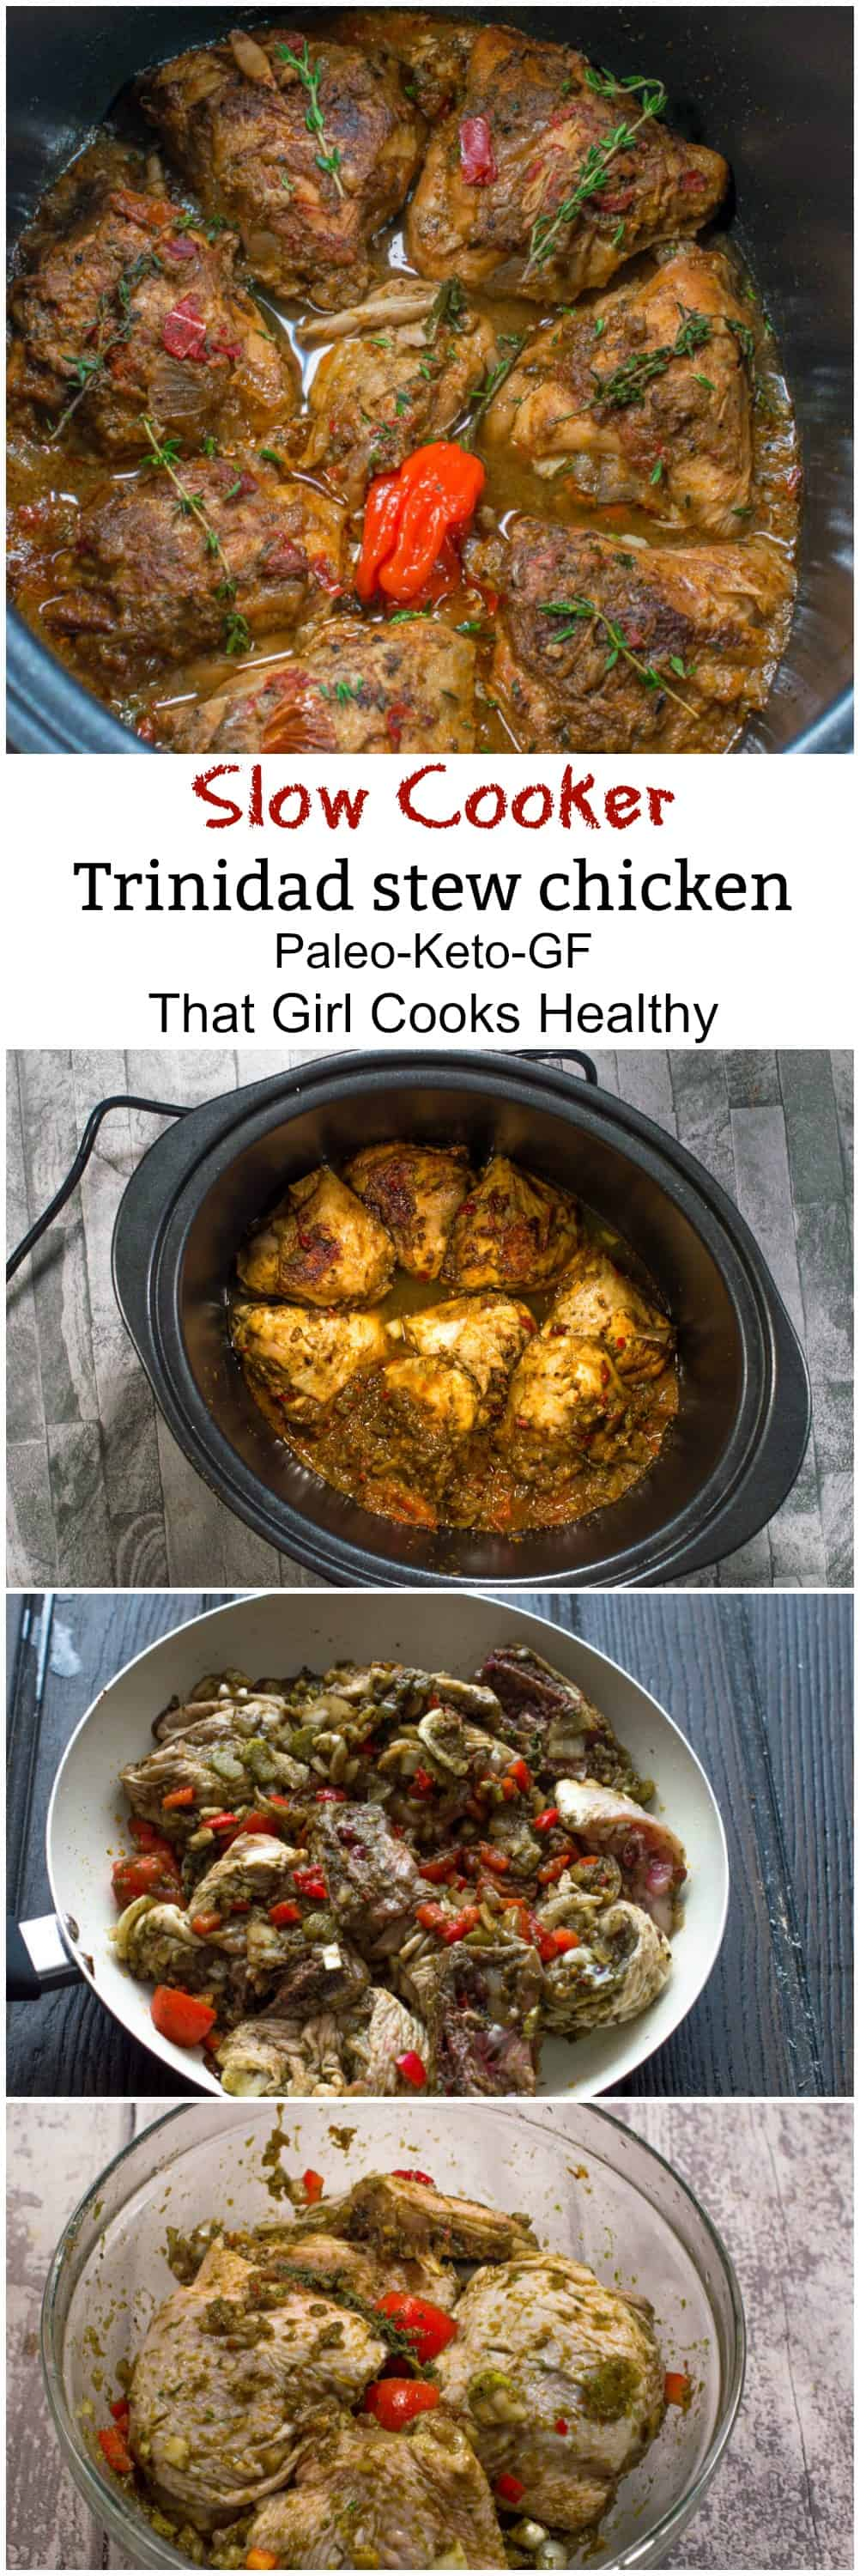 trinidad stew chicken